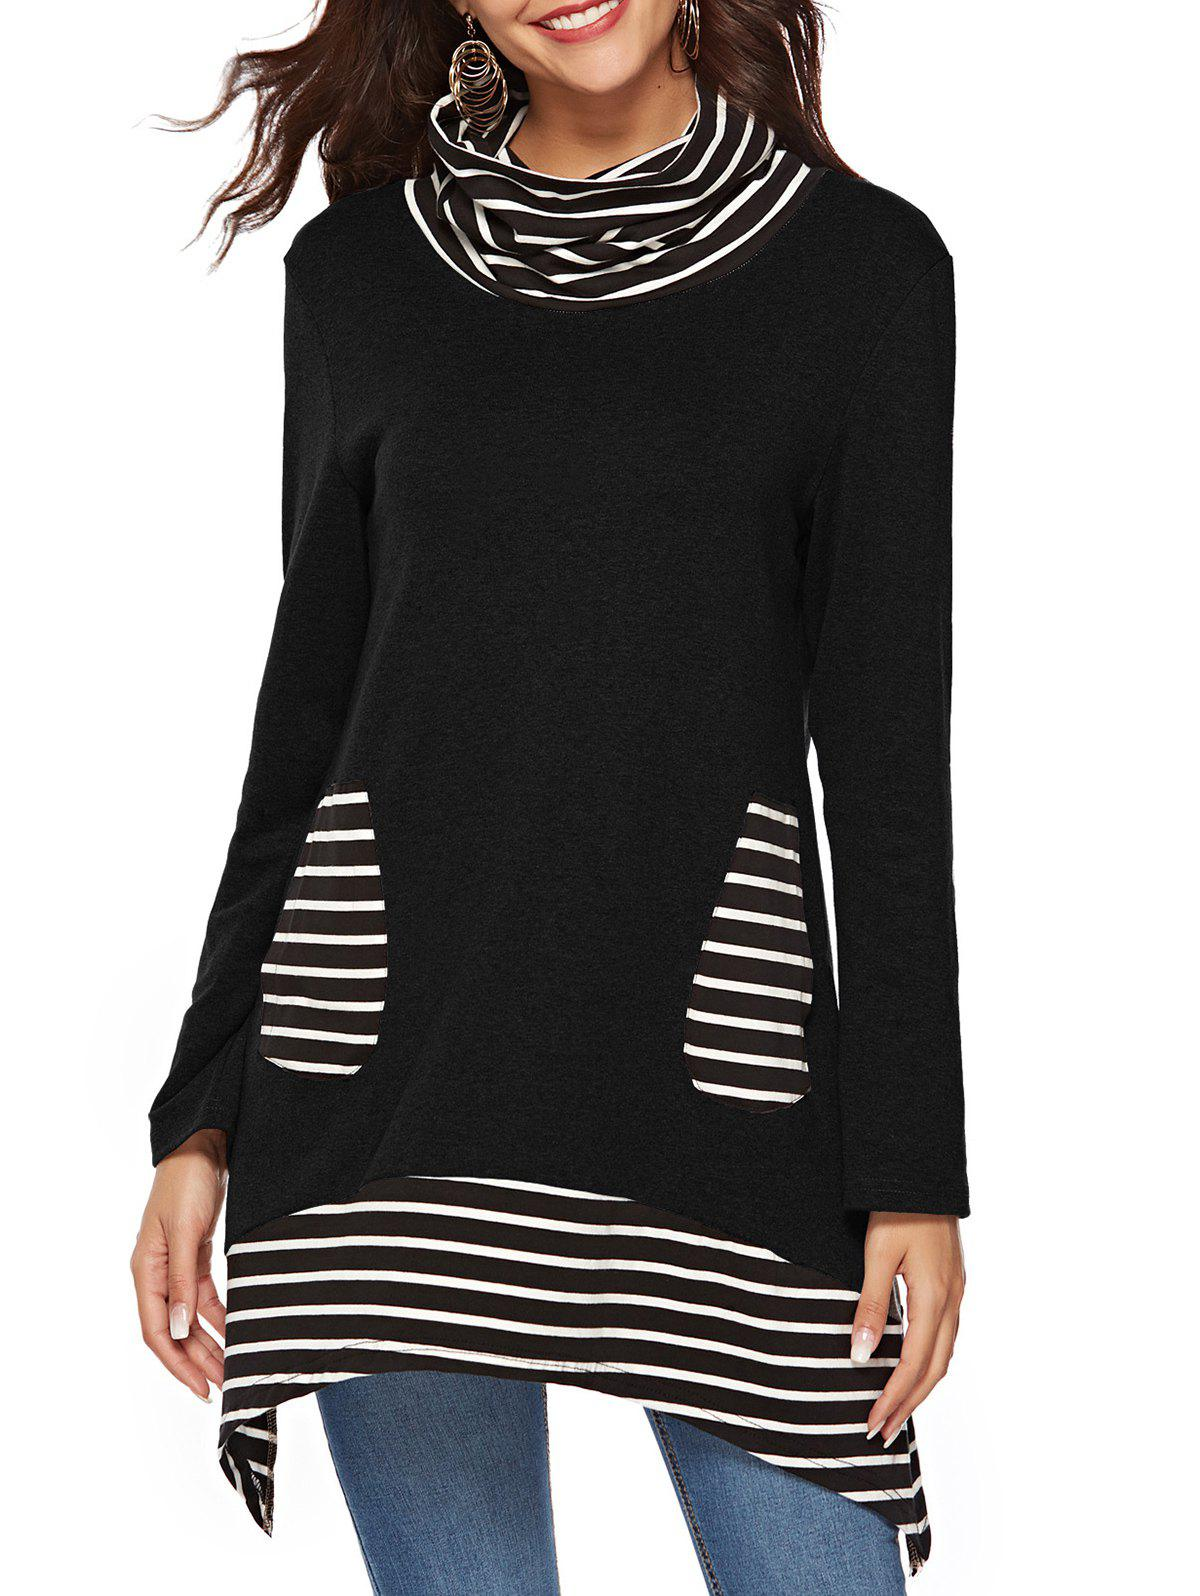 Sale Cowl Neck Striped Pockets Long Sleeves Tee